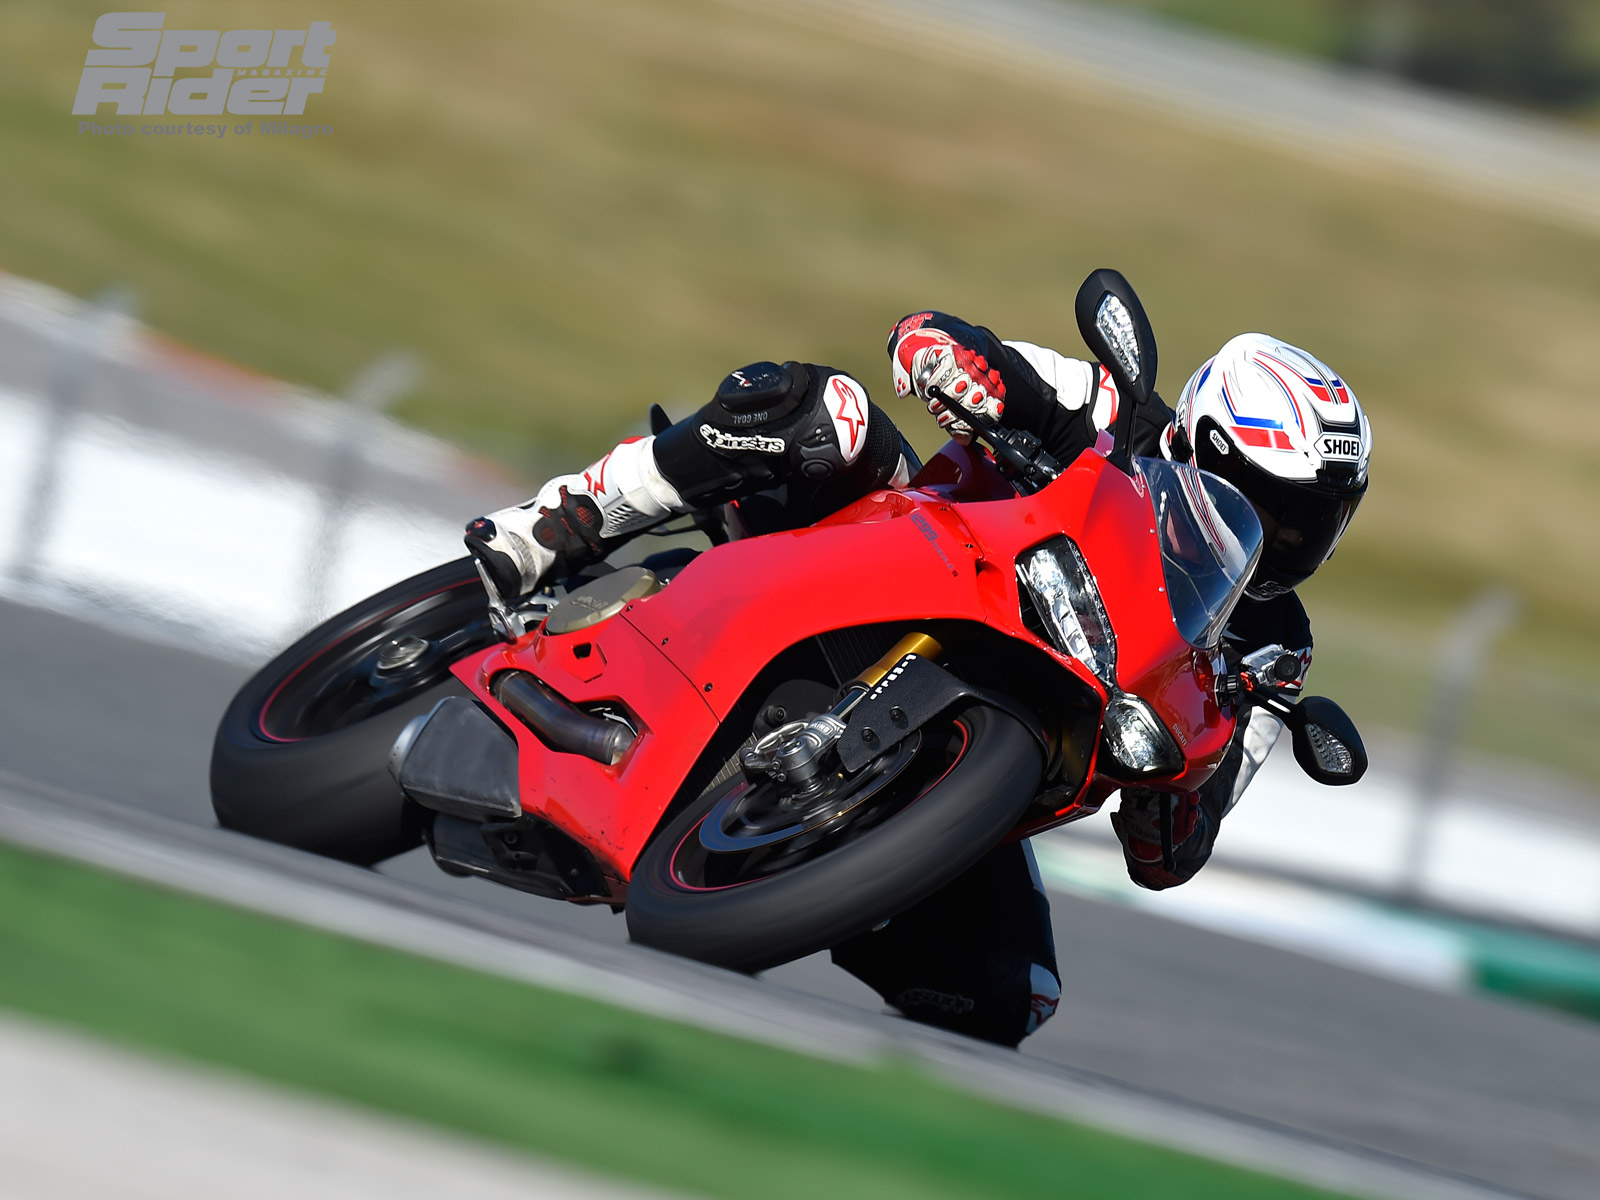 2015 Ducati 1299 Panigale S First Ride Review | Cycle World